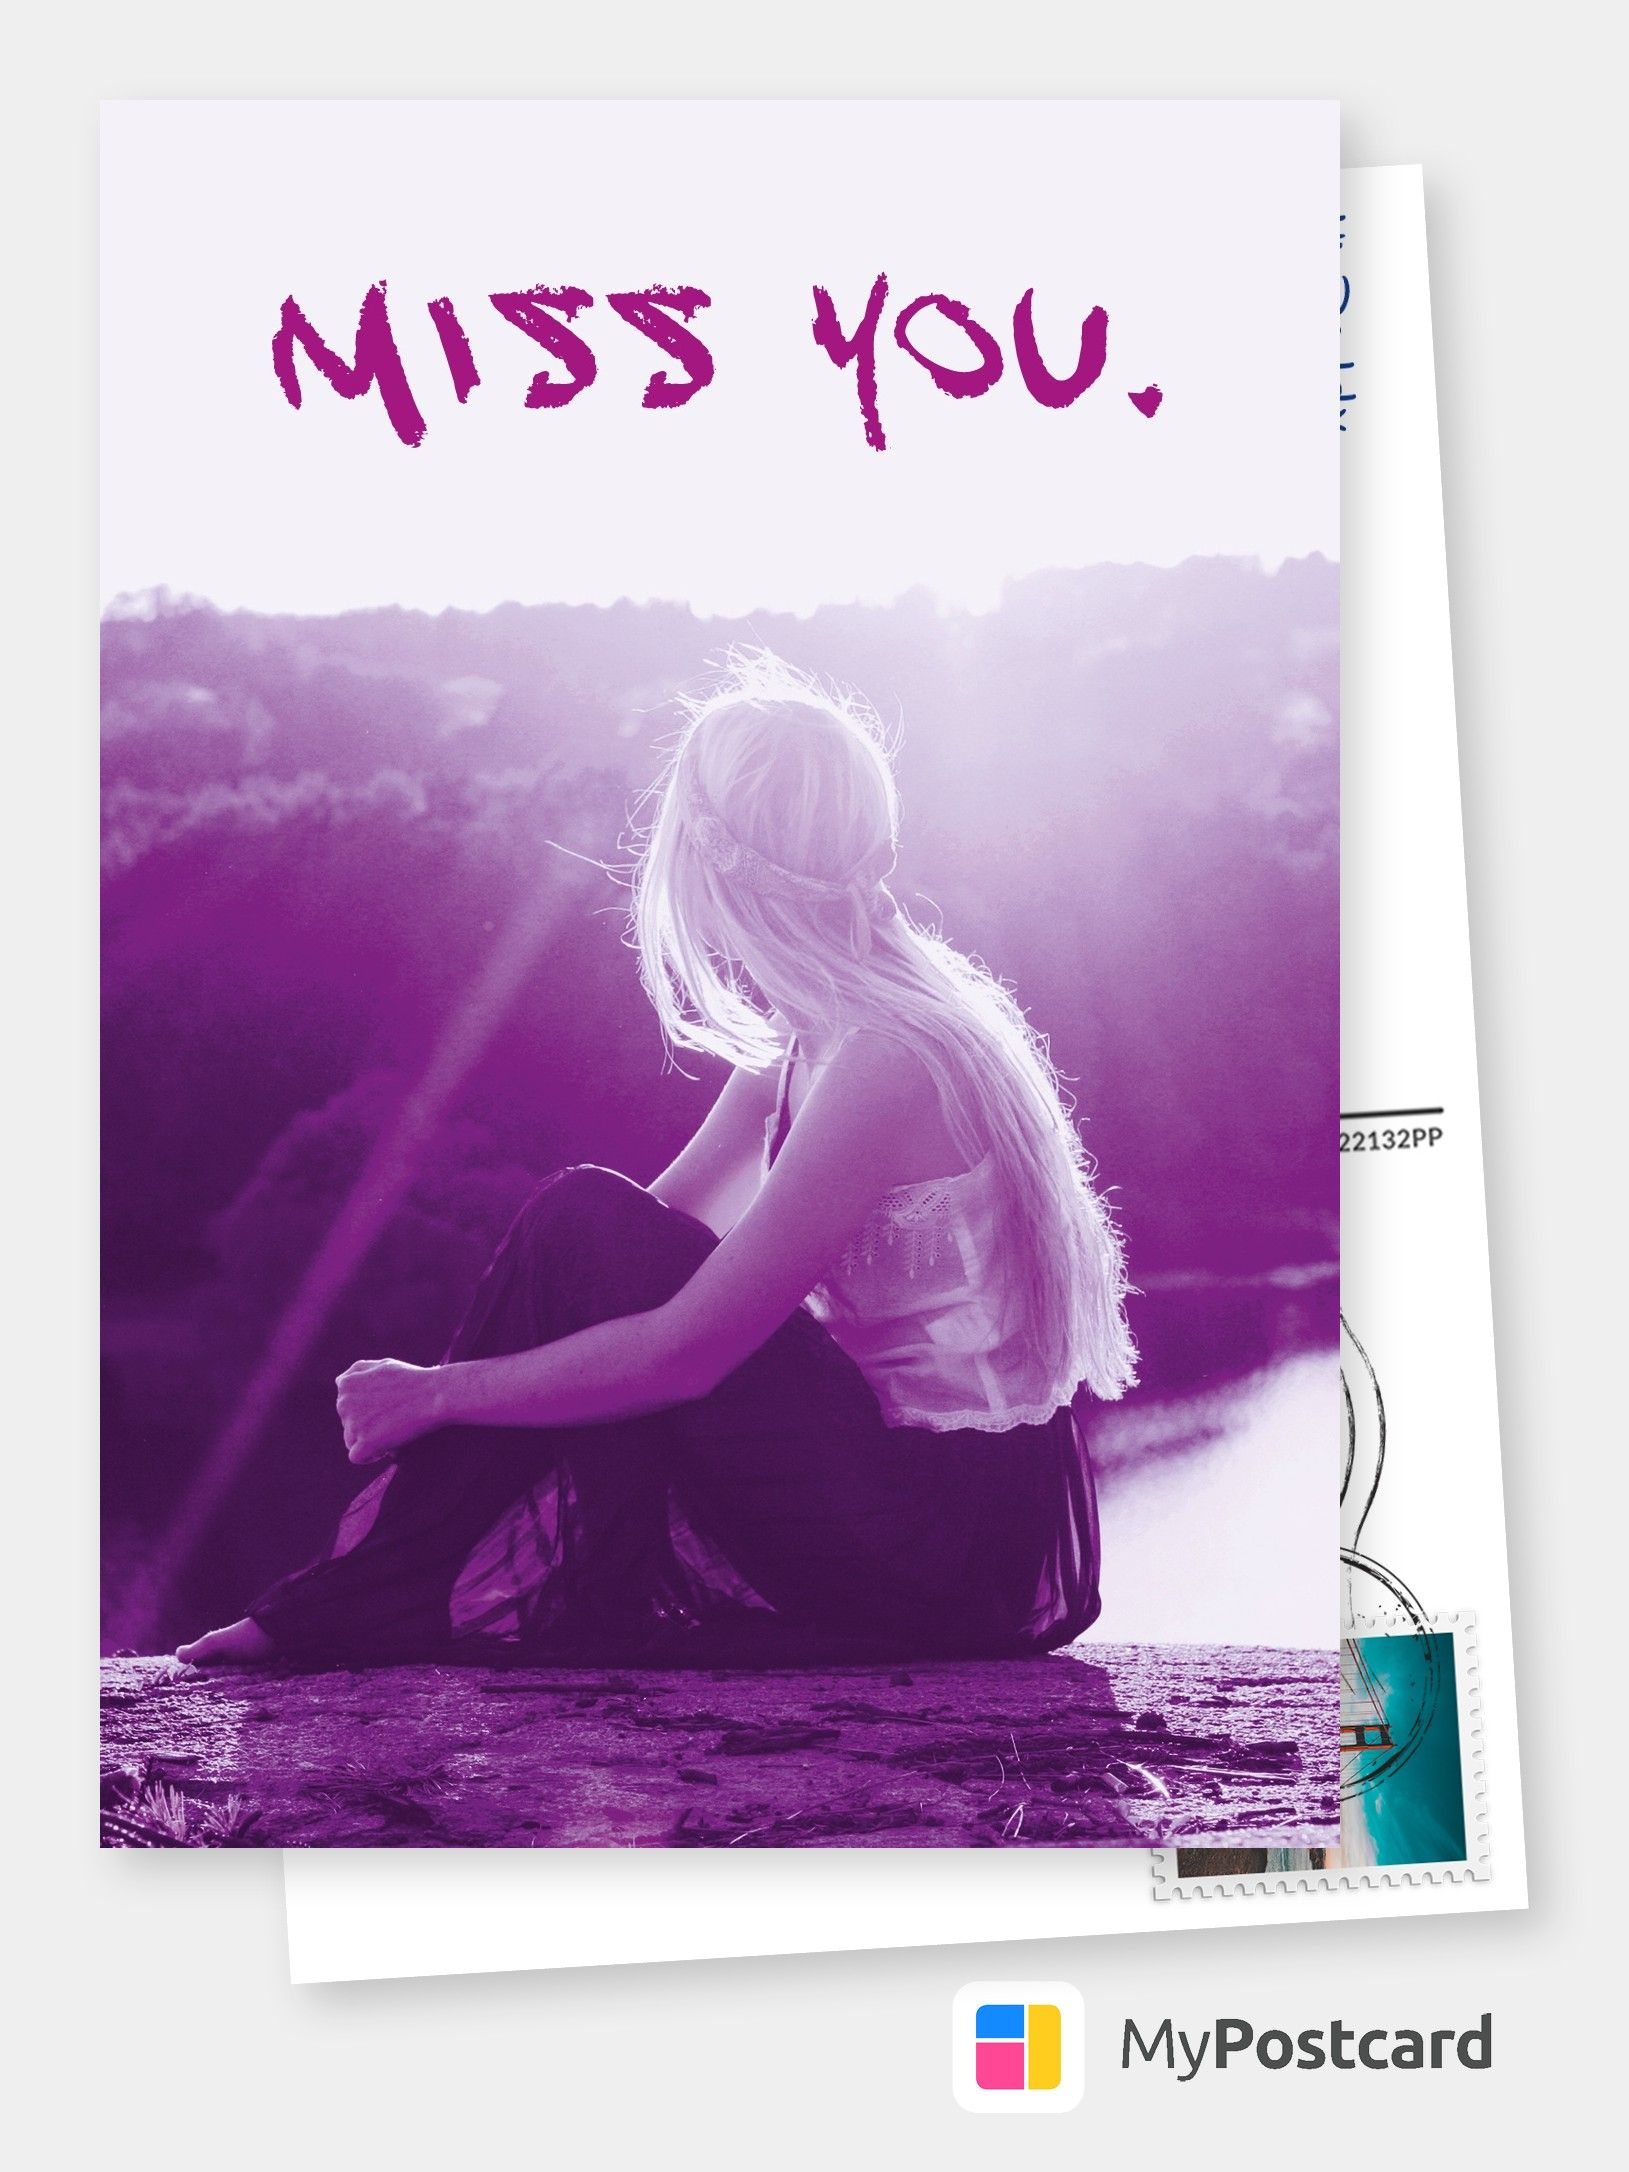 Create Your Own I Love You Cards Online Free Printable Templates Printed Mailed For You International Make Your Own Online Greeting Cards Love Cards E Greeting Cards